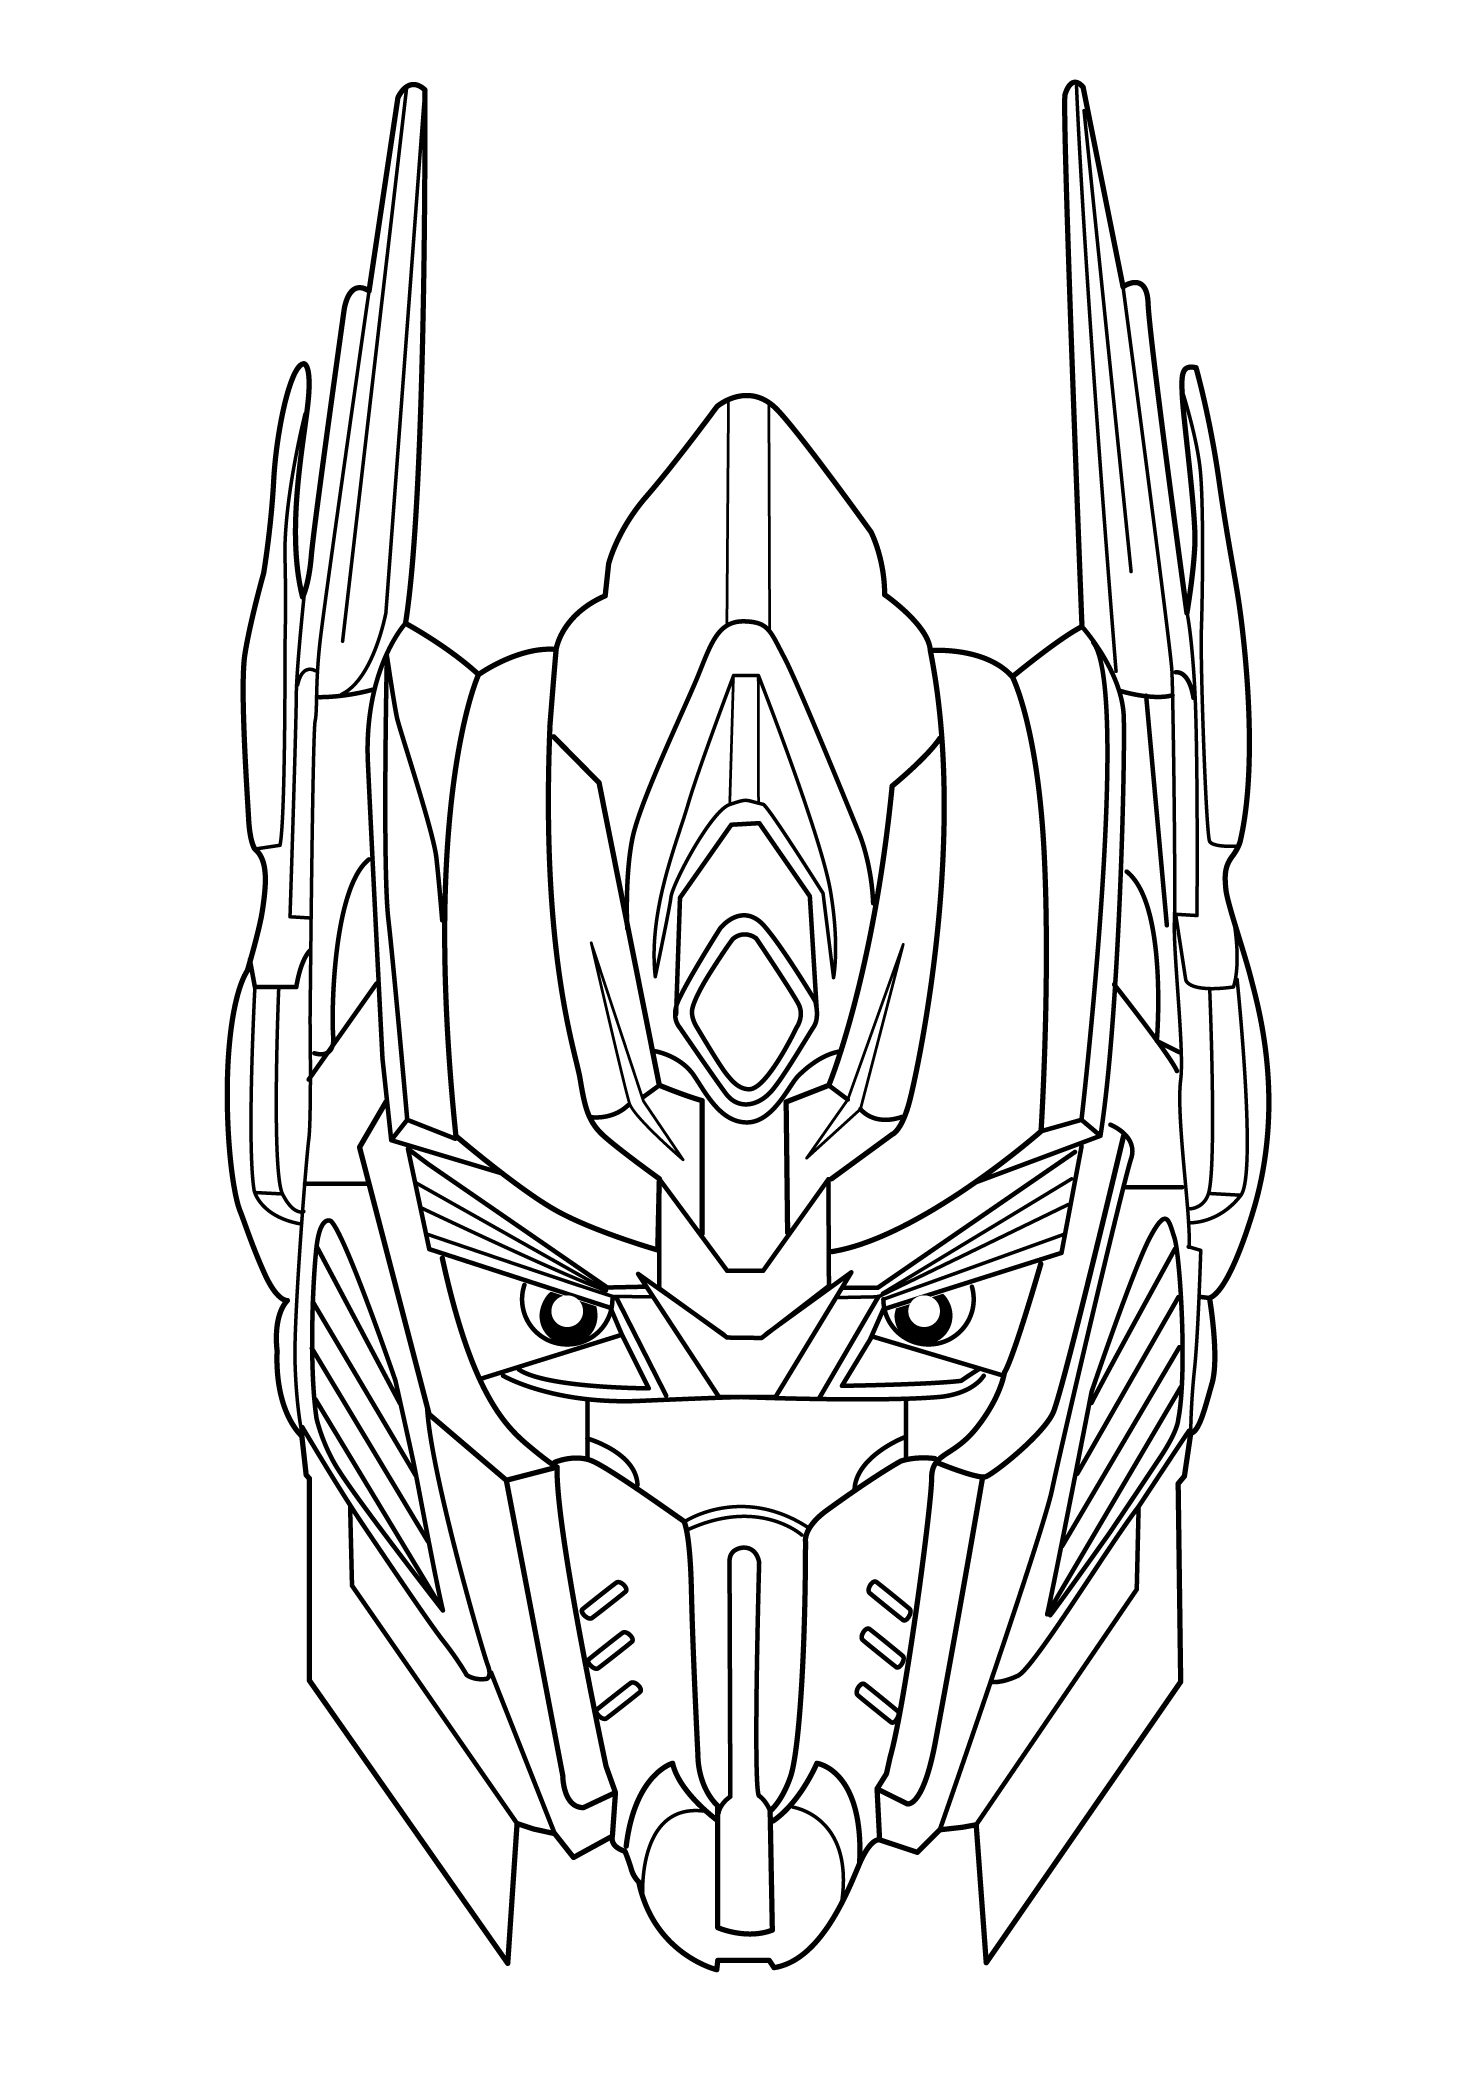 Transformers coloring pages for kids free printable fun at home